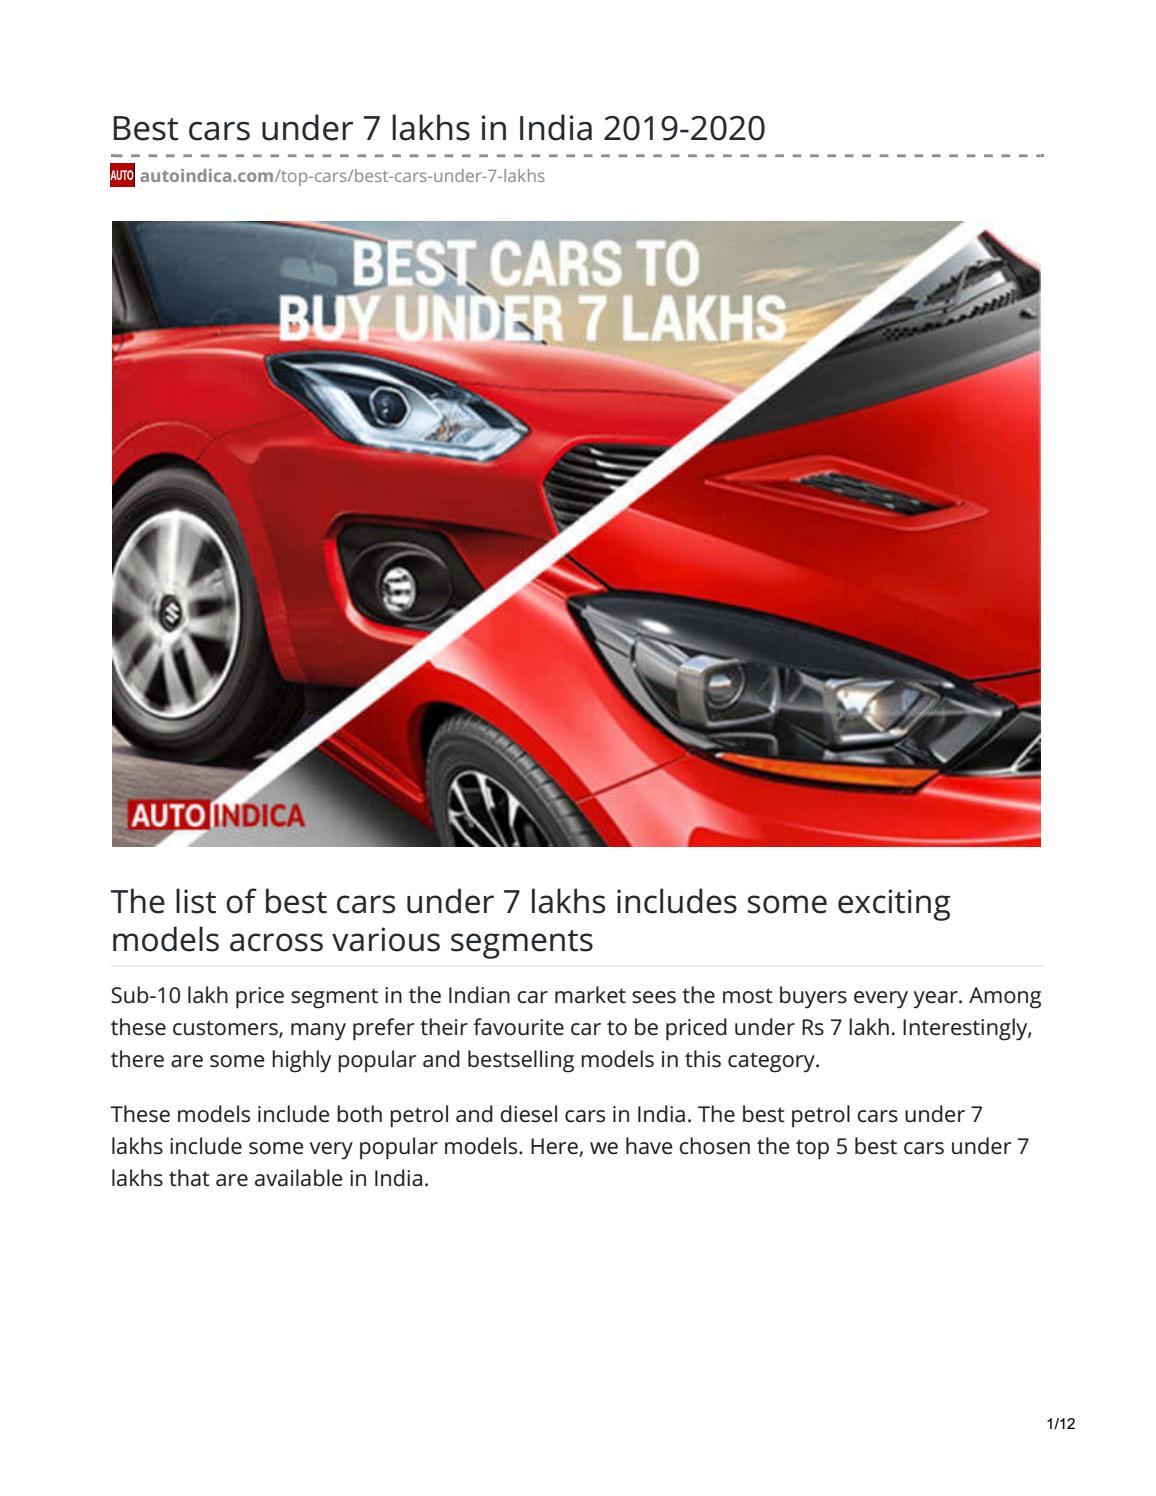 Best Selling Cars 2020.Best Cars Under 7 Lakhs In India 2019 2020 By Jay Rajput Issuu